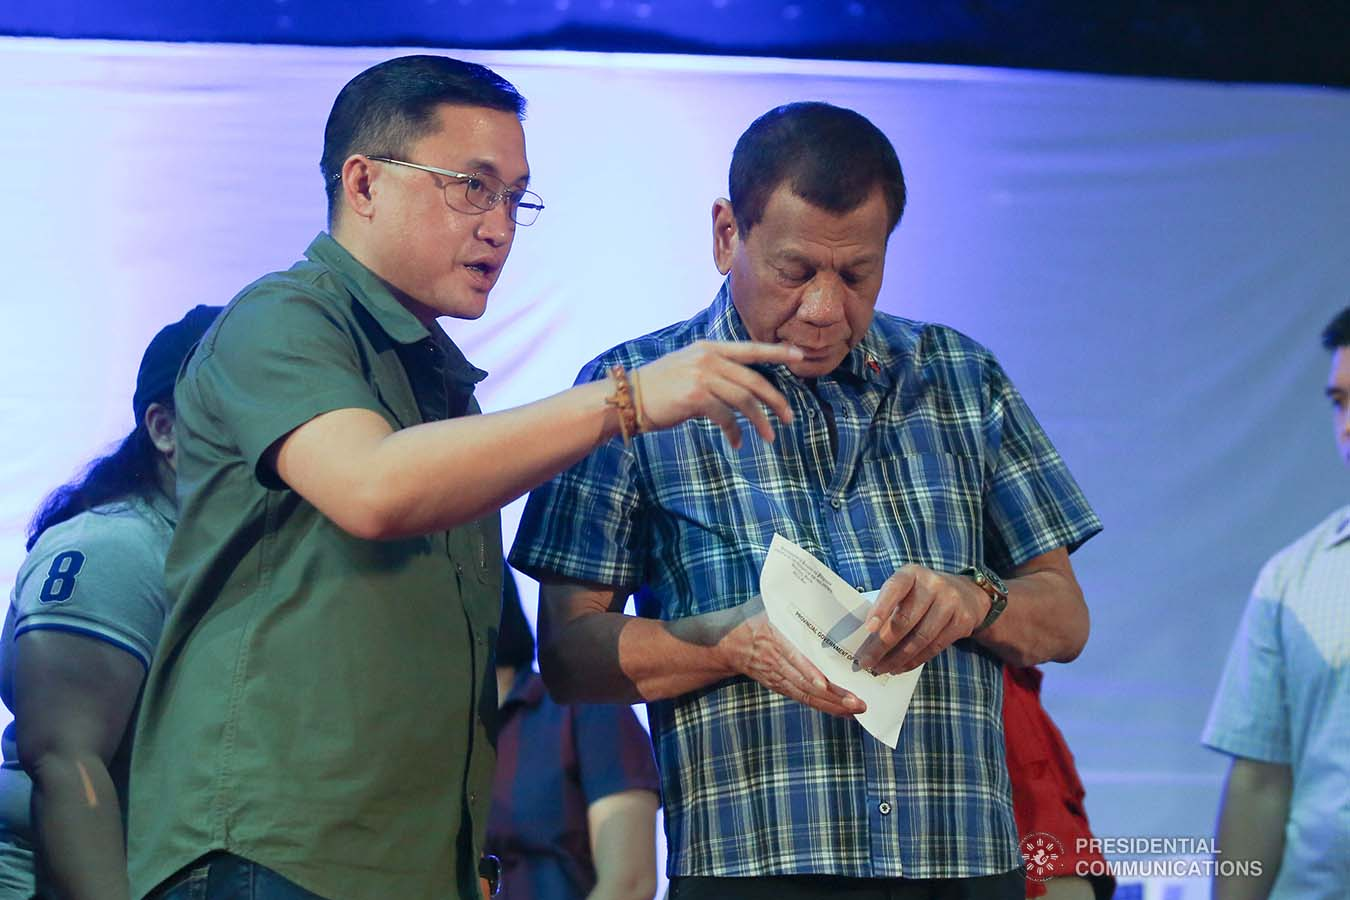 """President Rodrigo Roa Duterte prepares to hand over the calamity assistance for the Provincial Government of Batangas during his visit to the families affected by the Taal Volcano eruption at the Polytechnic University of the Philippines-Sto. Tomas Campus in Sto. Tomas City, Batangas on January 20, 2020. With the President is Senator Christopher """"Bong"""" Go. VALERIE ESCALERA/PRESIDENTIAL PHOTO"""